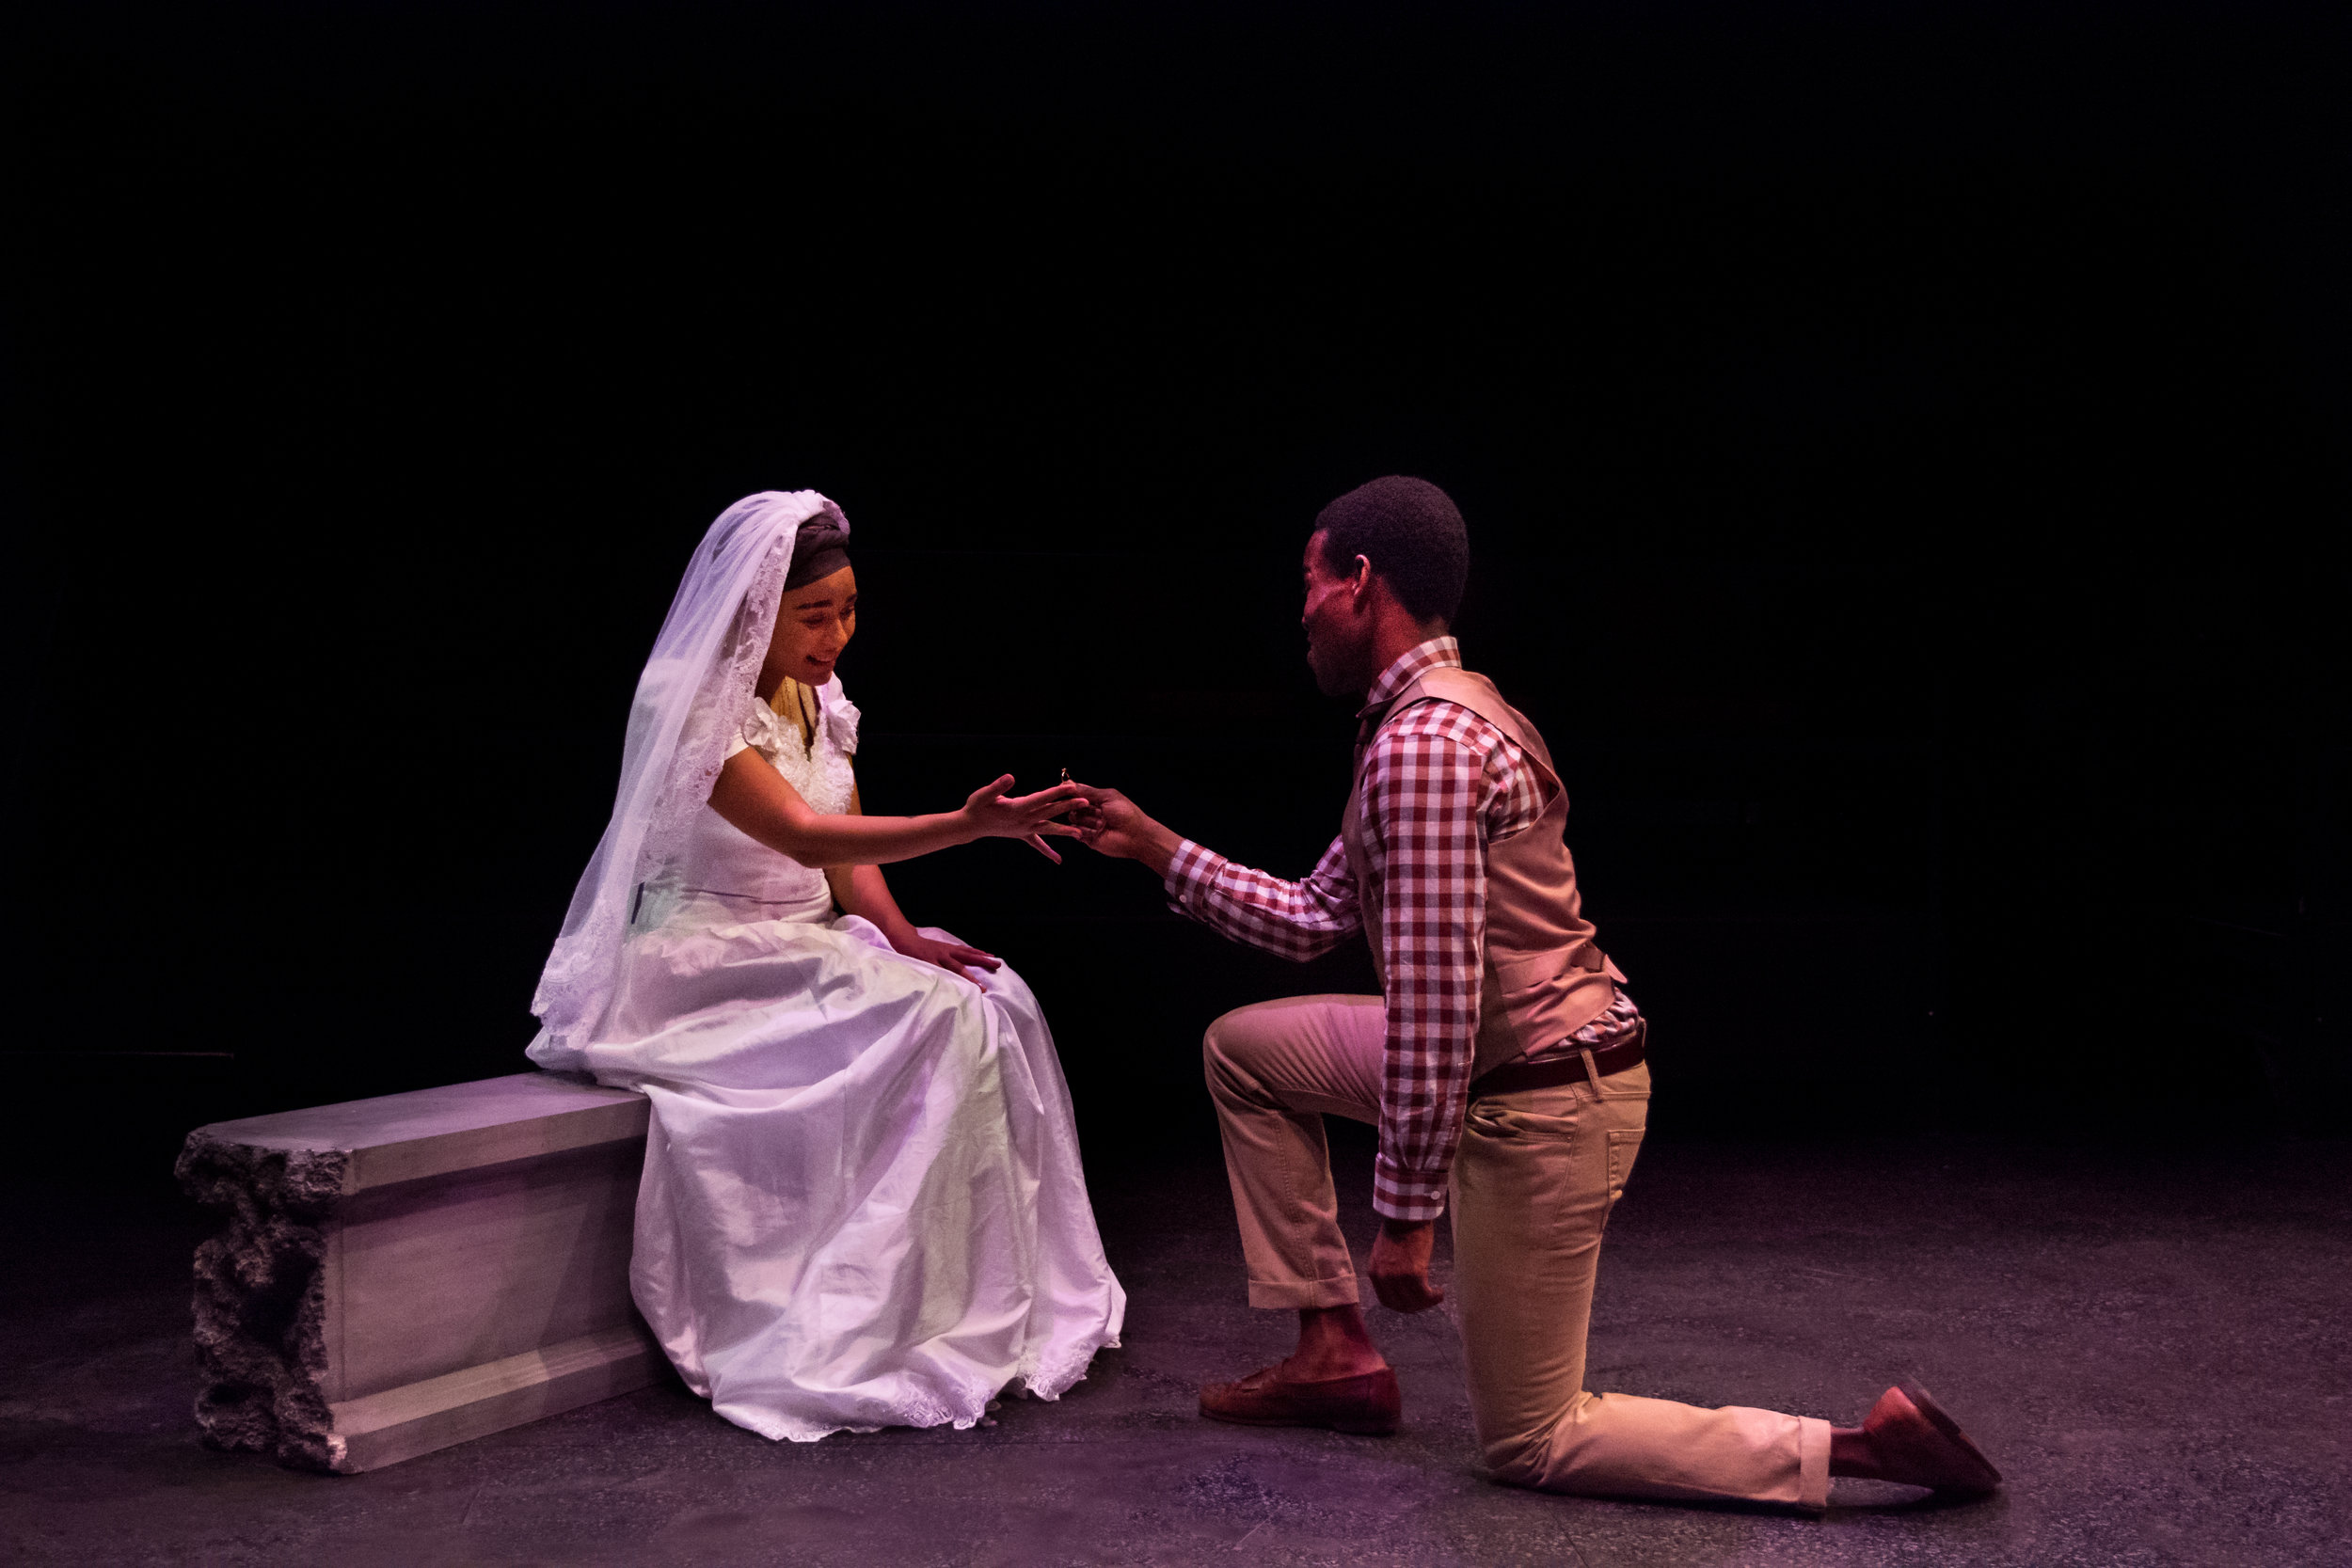 In The Blood Photo Call0110-1 Proposal-RAW 2.jpg